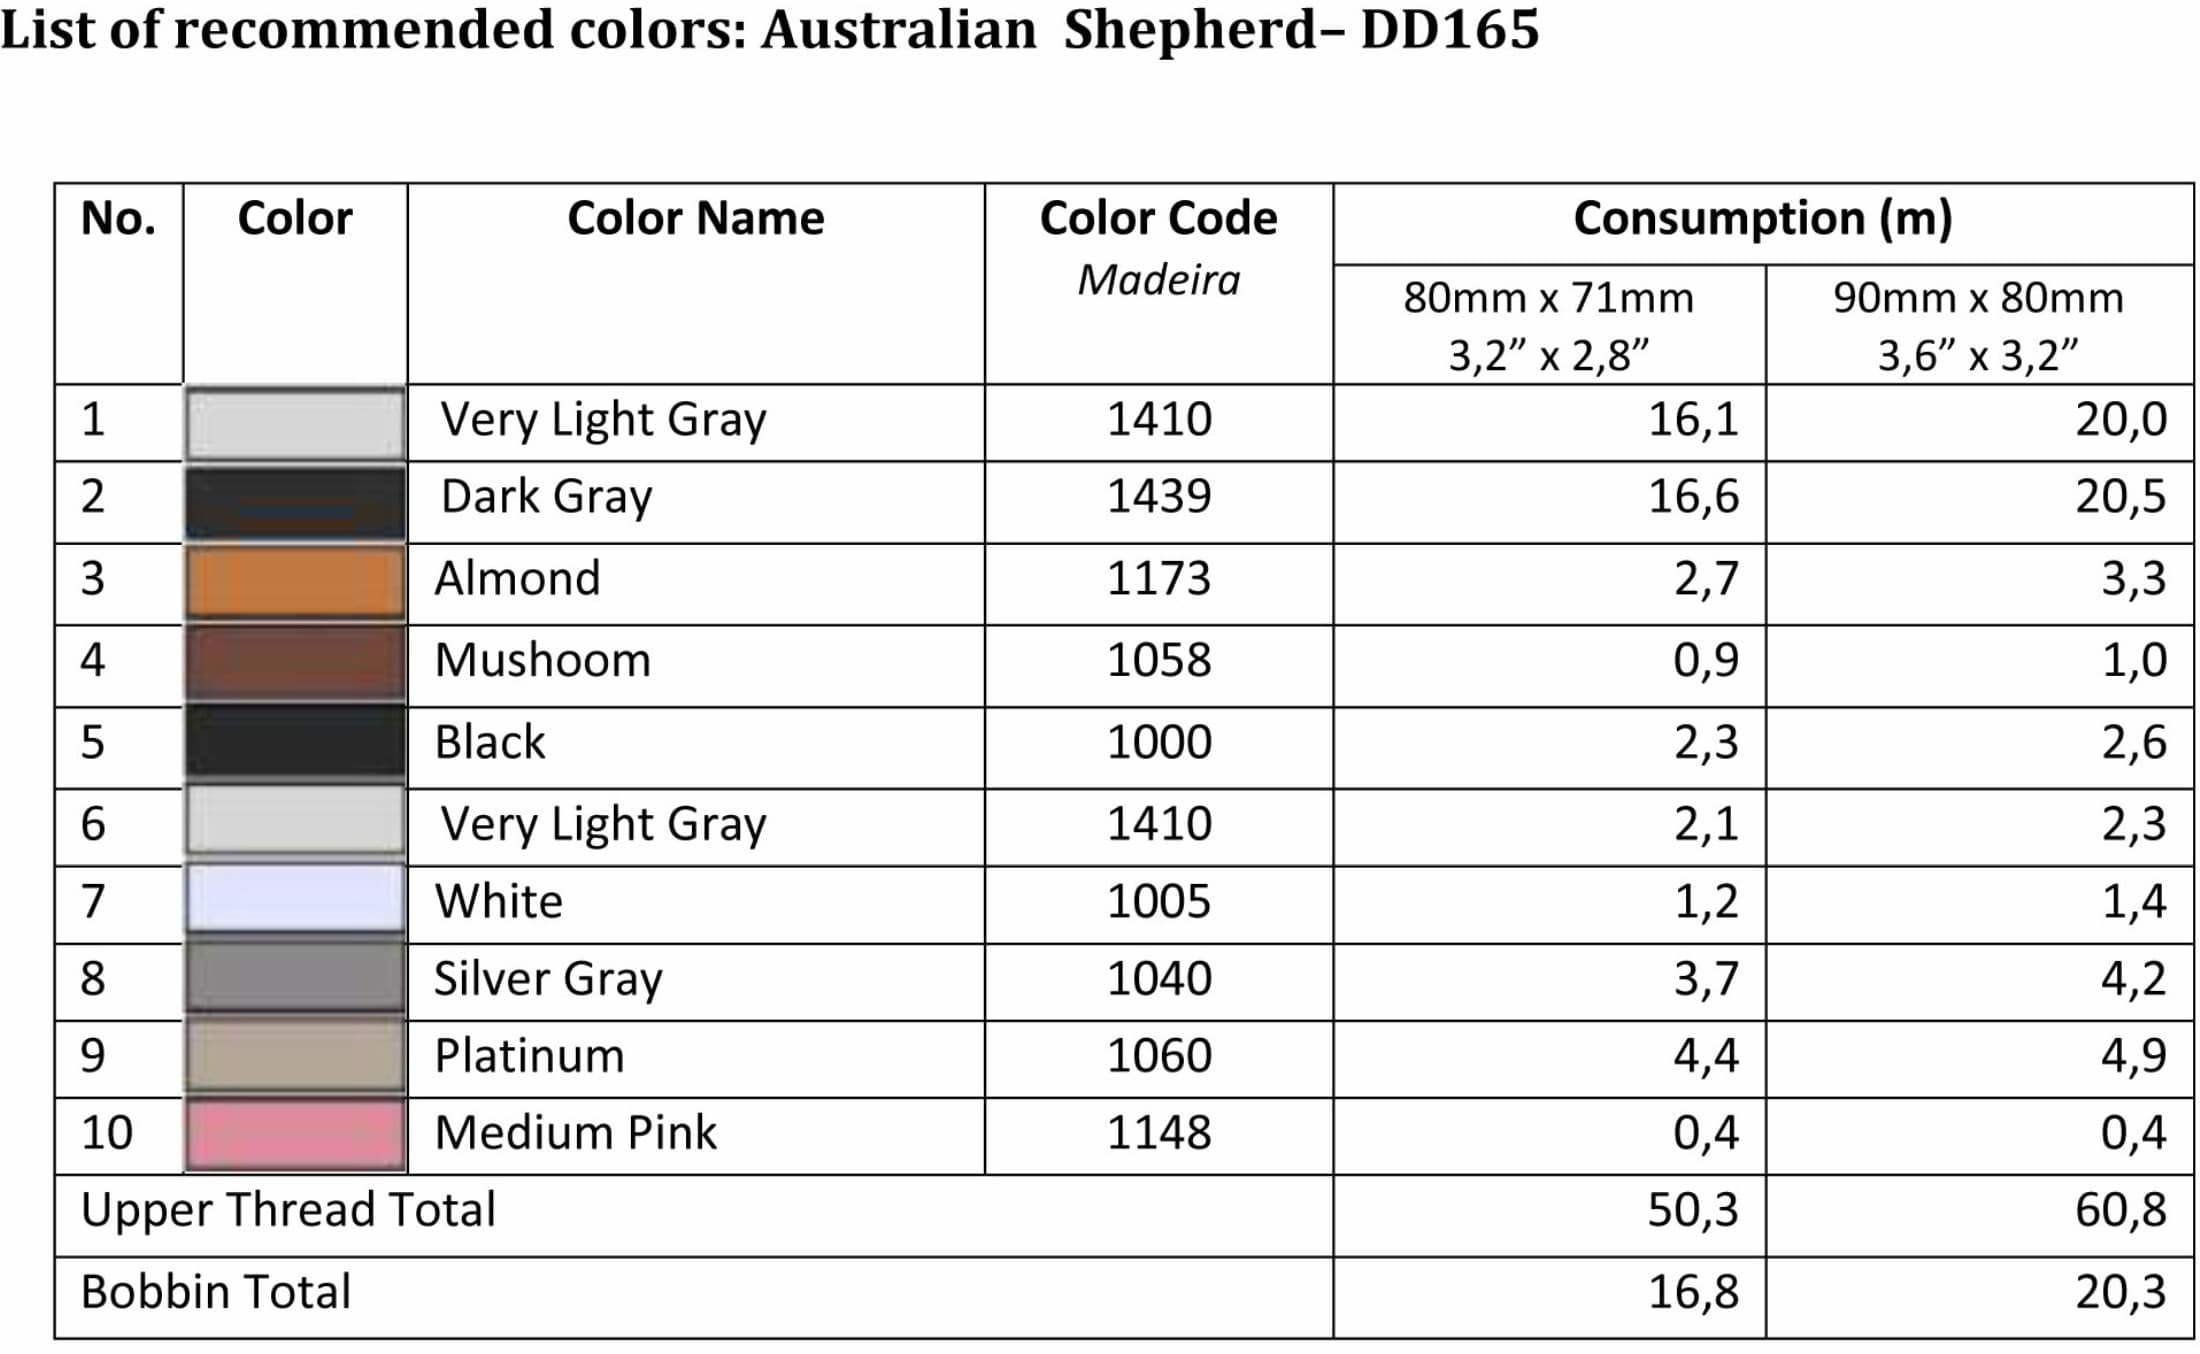 List of recommended colors - DD165